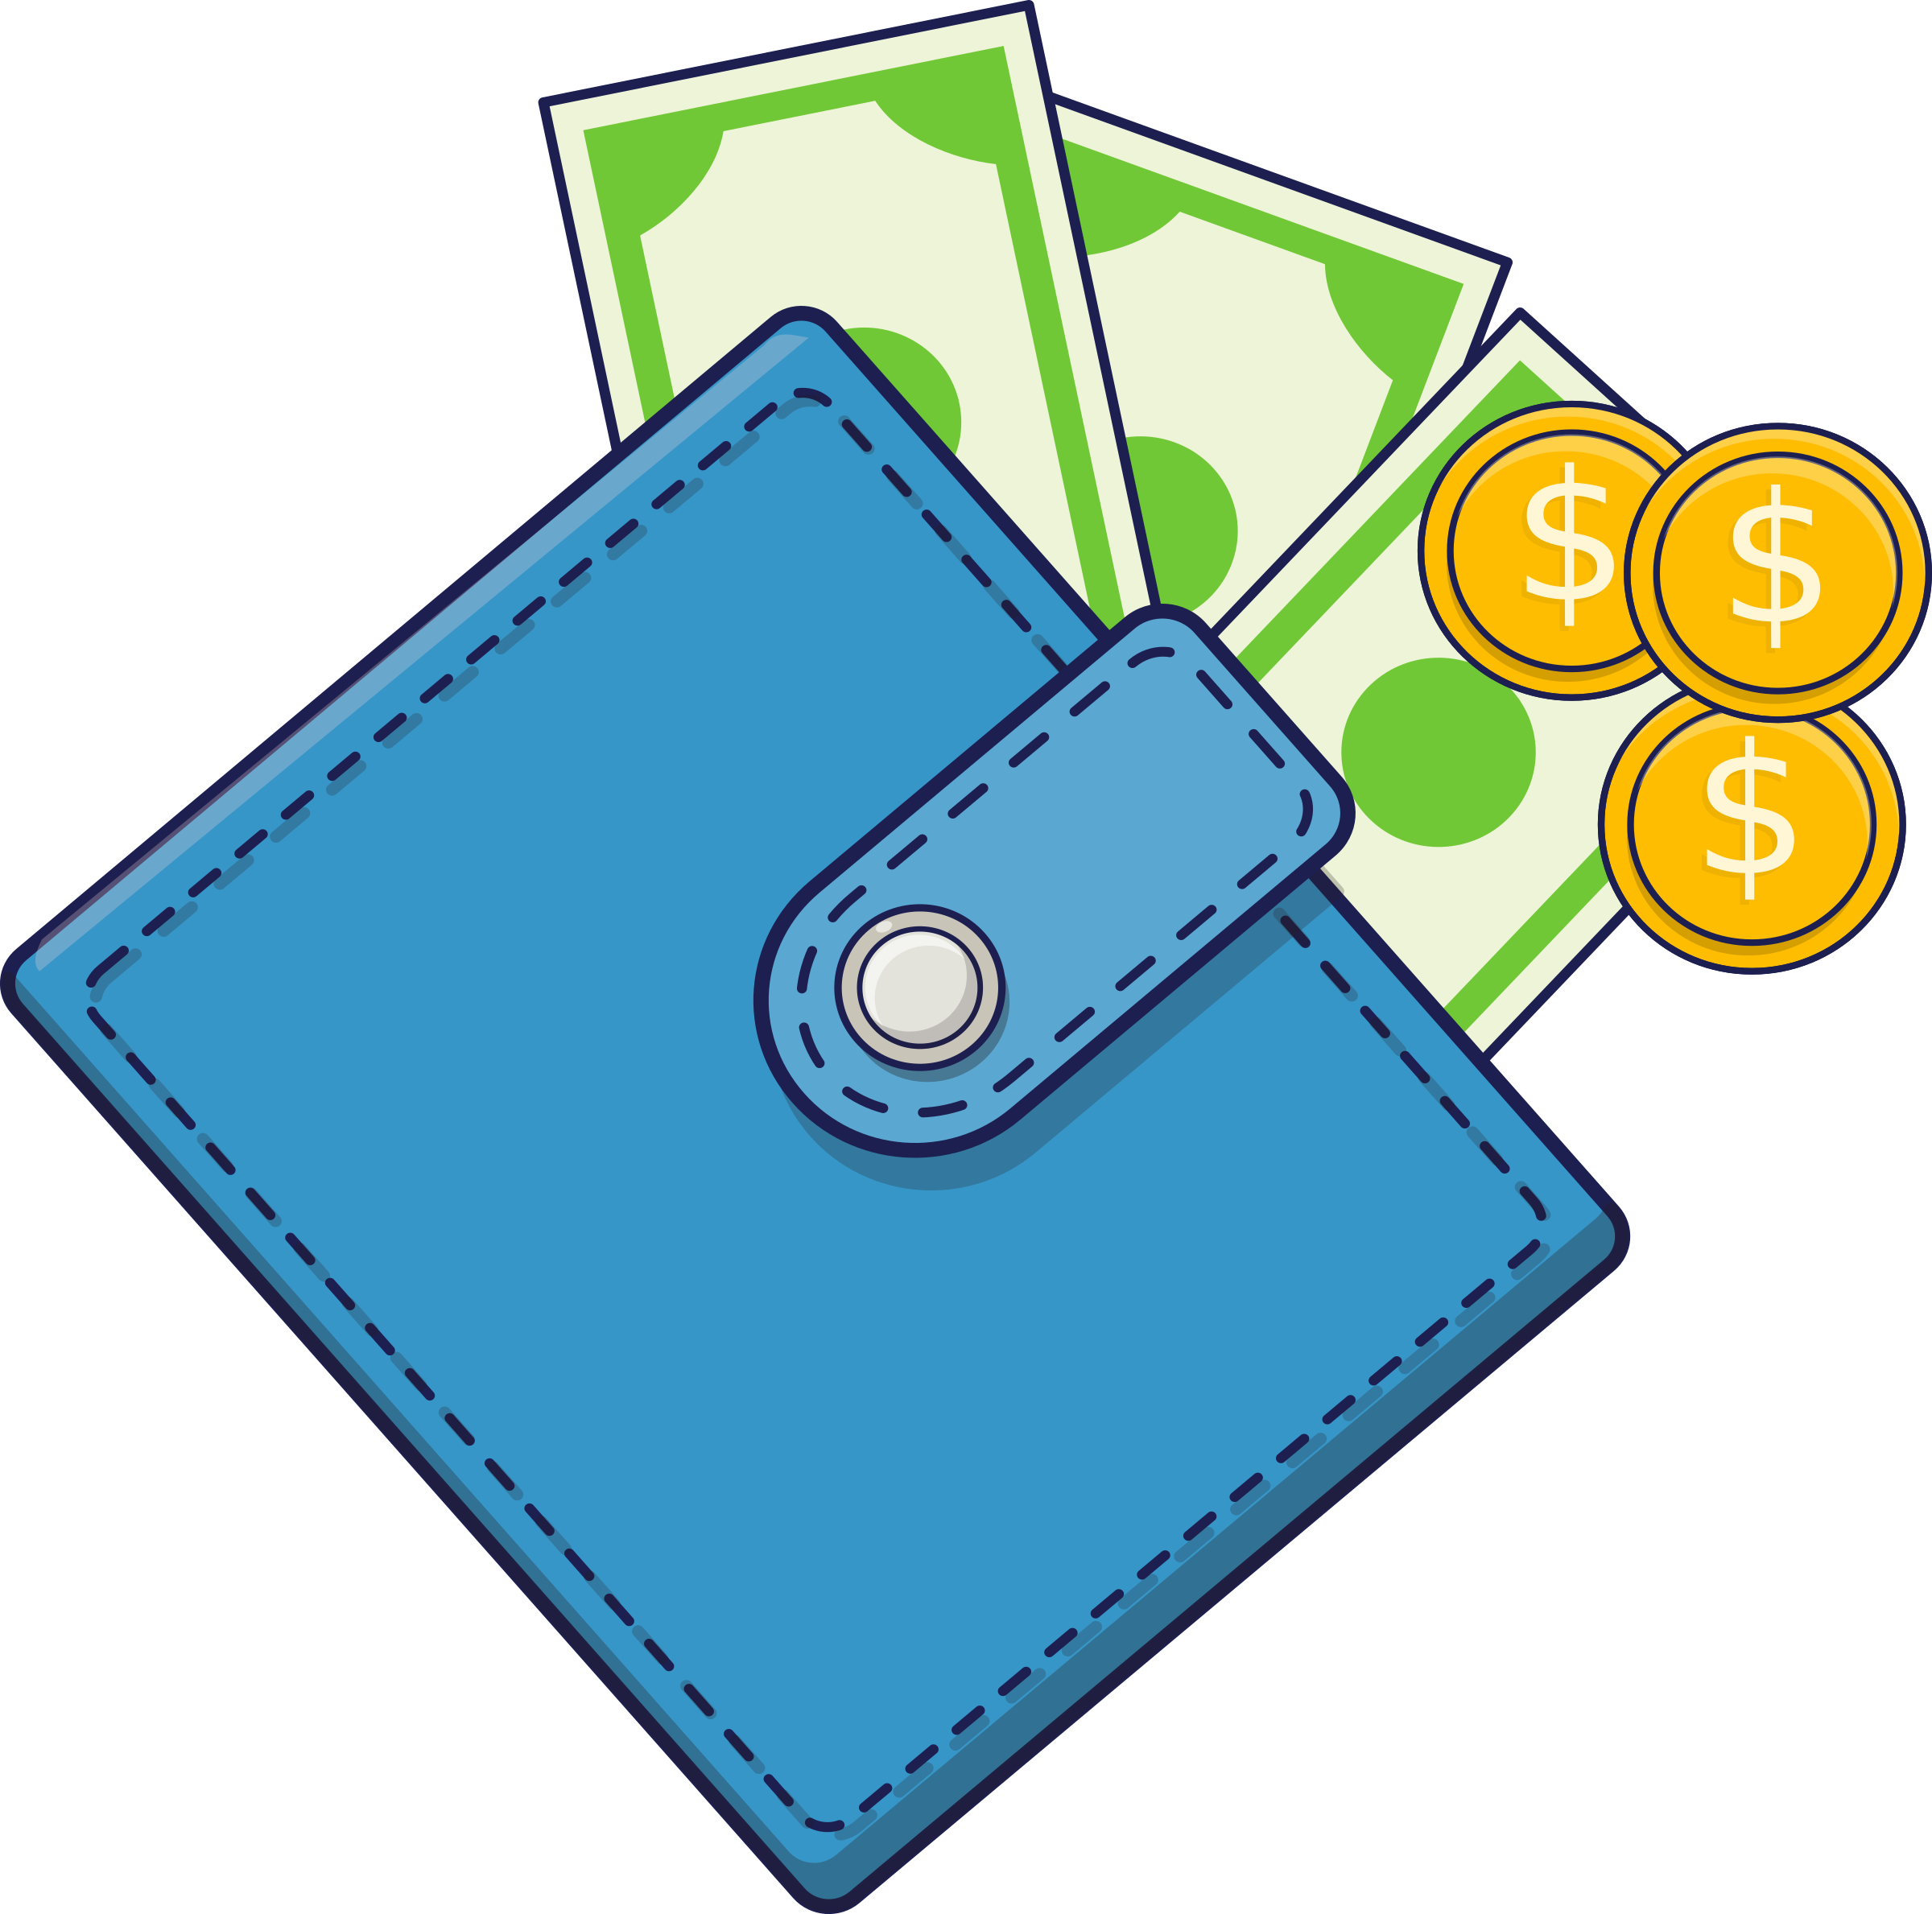 With cash big image. Wallet clipart clipart freeuse library